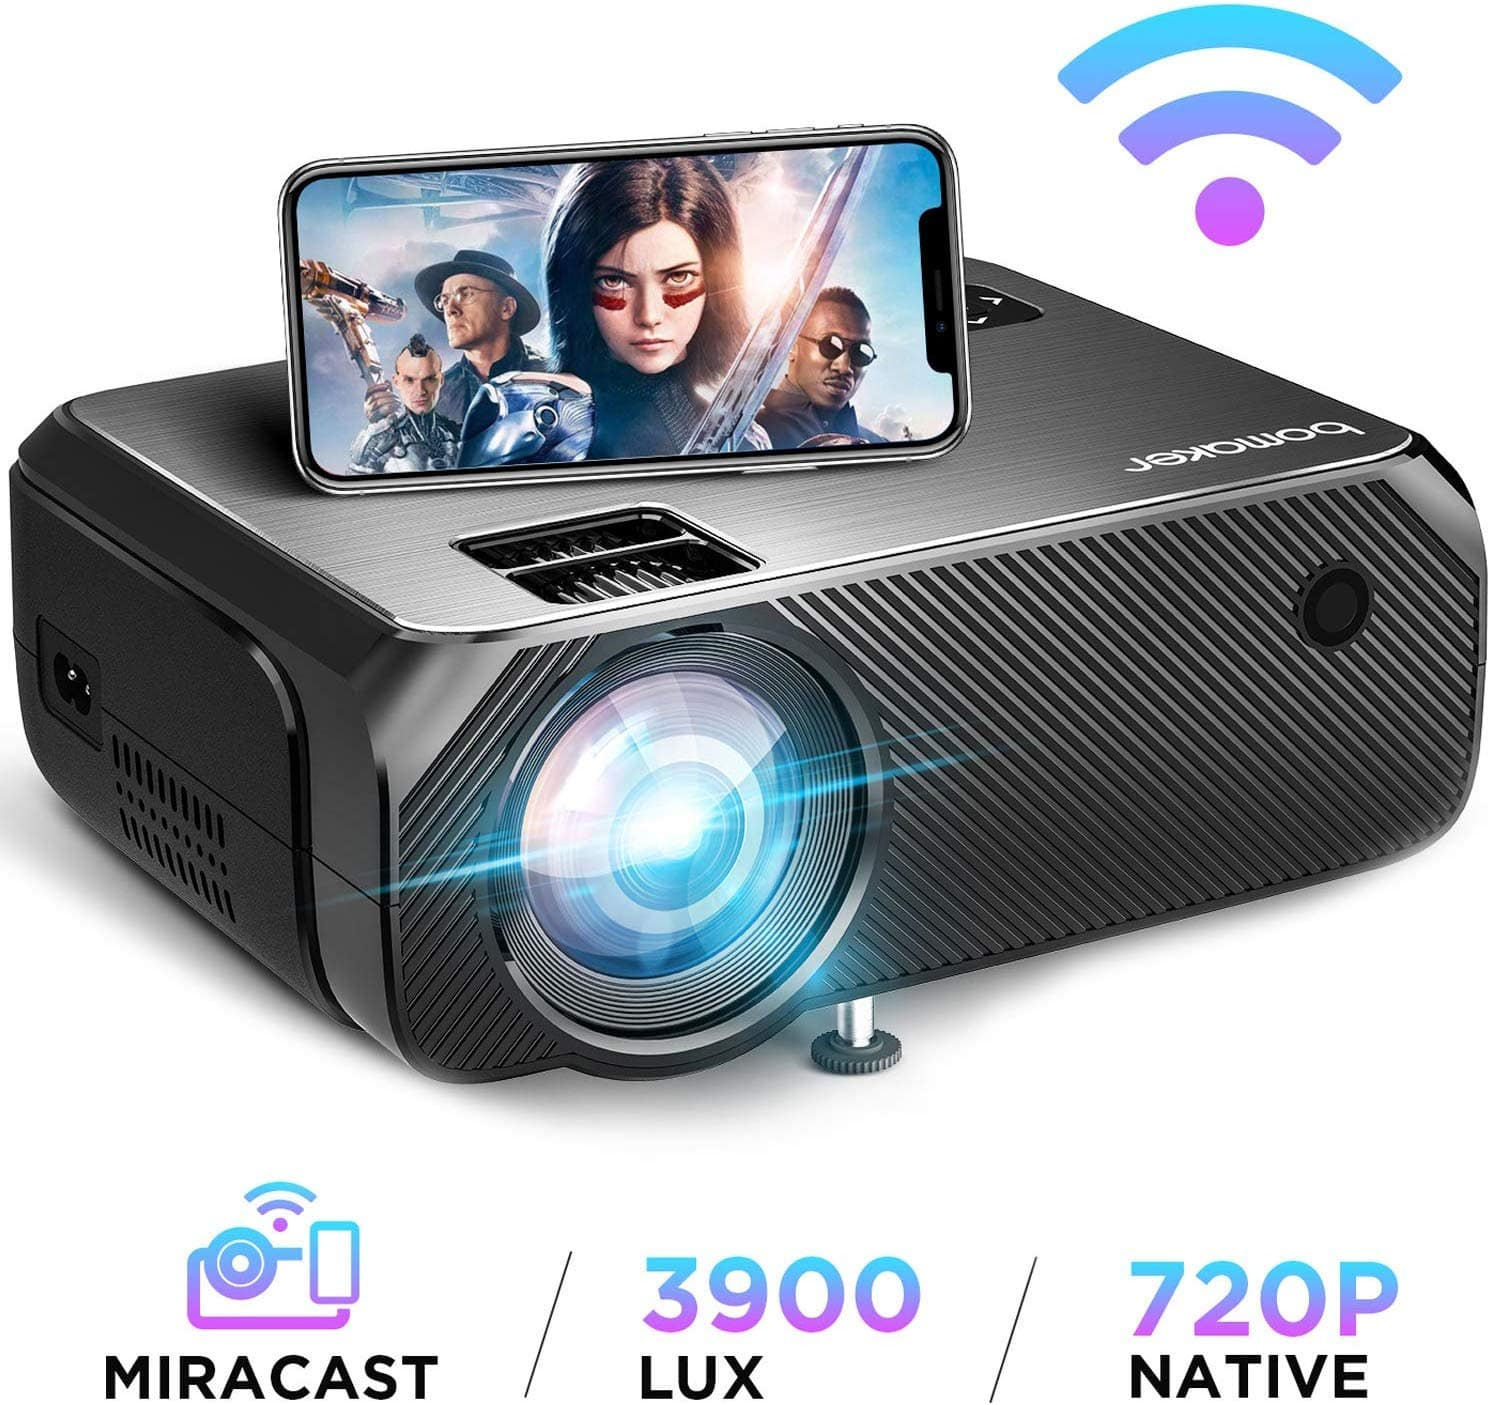 Wireless Screen Mirroring and Cast Screen TV Projector $90.98 at Amazon